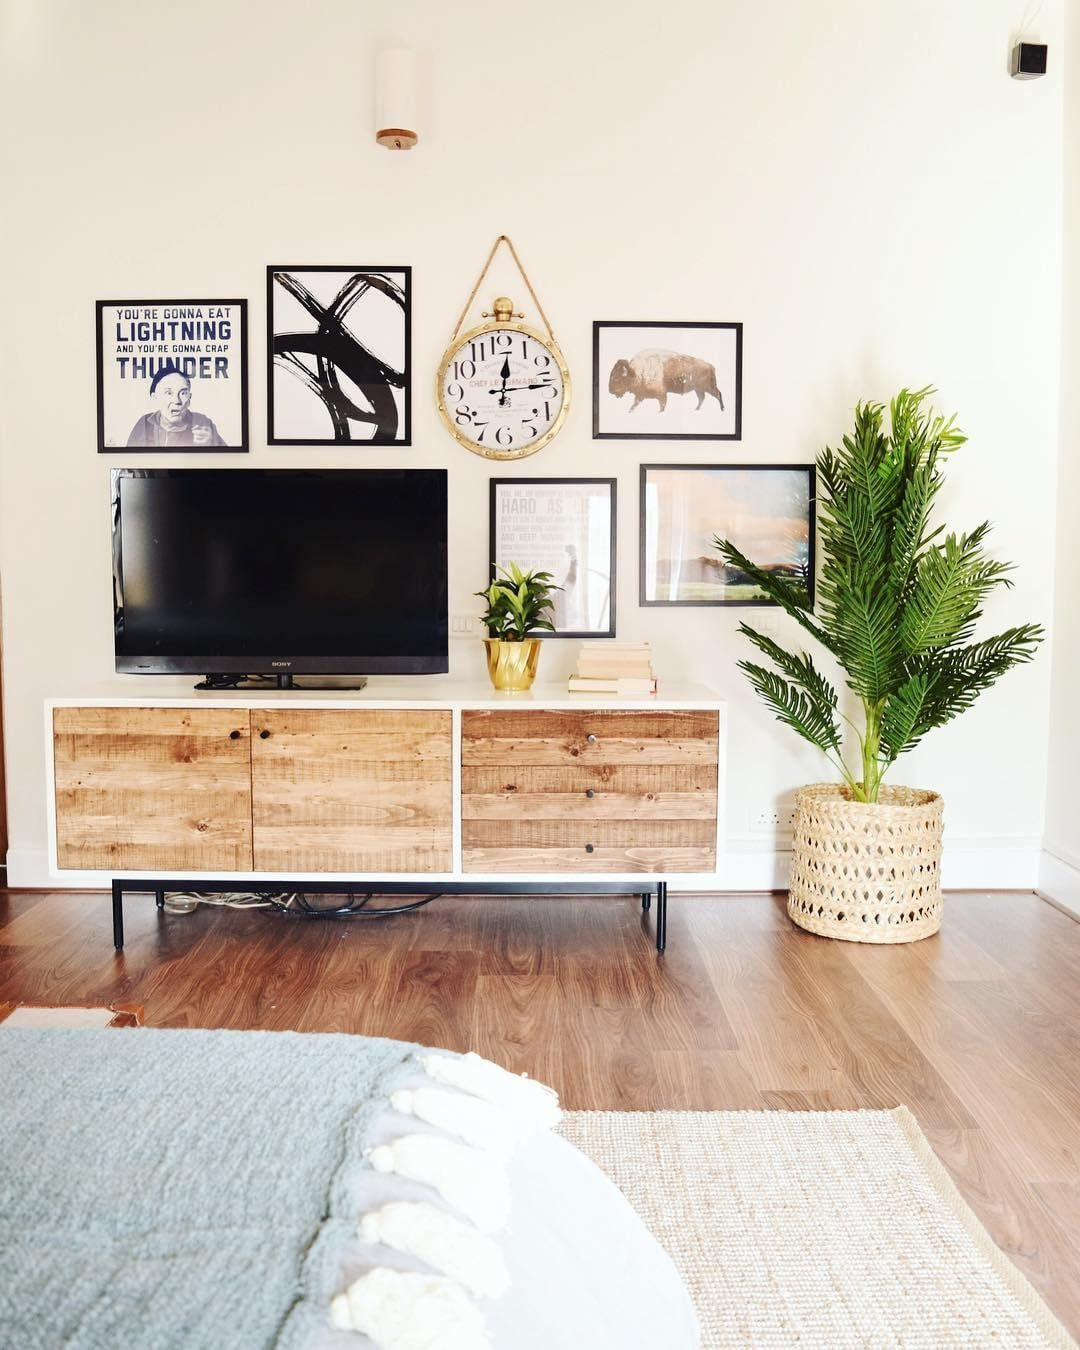 """Urban Company Homes on Instagram: """"Bored of the blank wall behind your TV? You can totally compose a picture gallery around it & make it look this amazing! 😊 Plus, you'll…"""""""